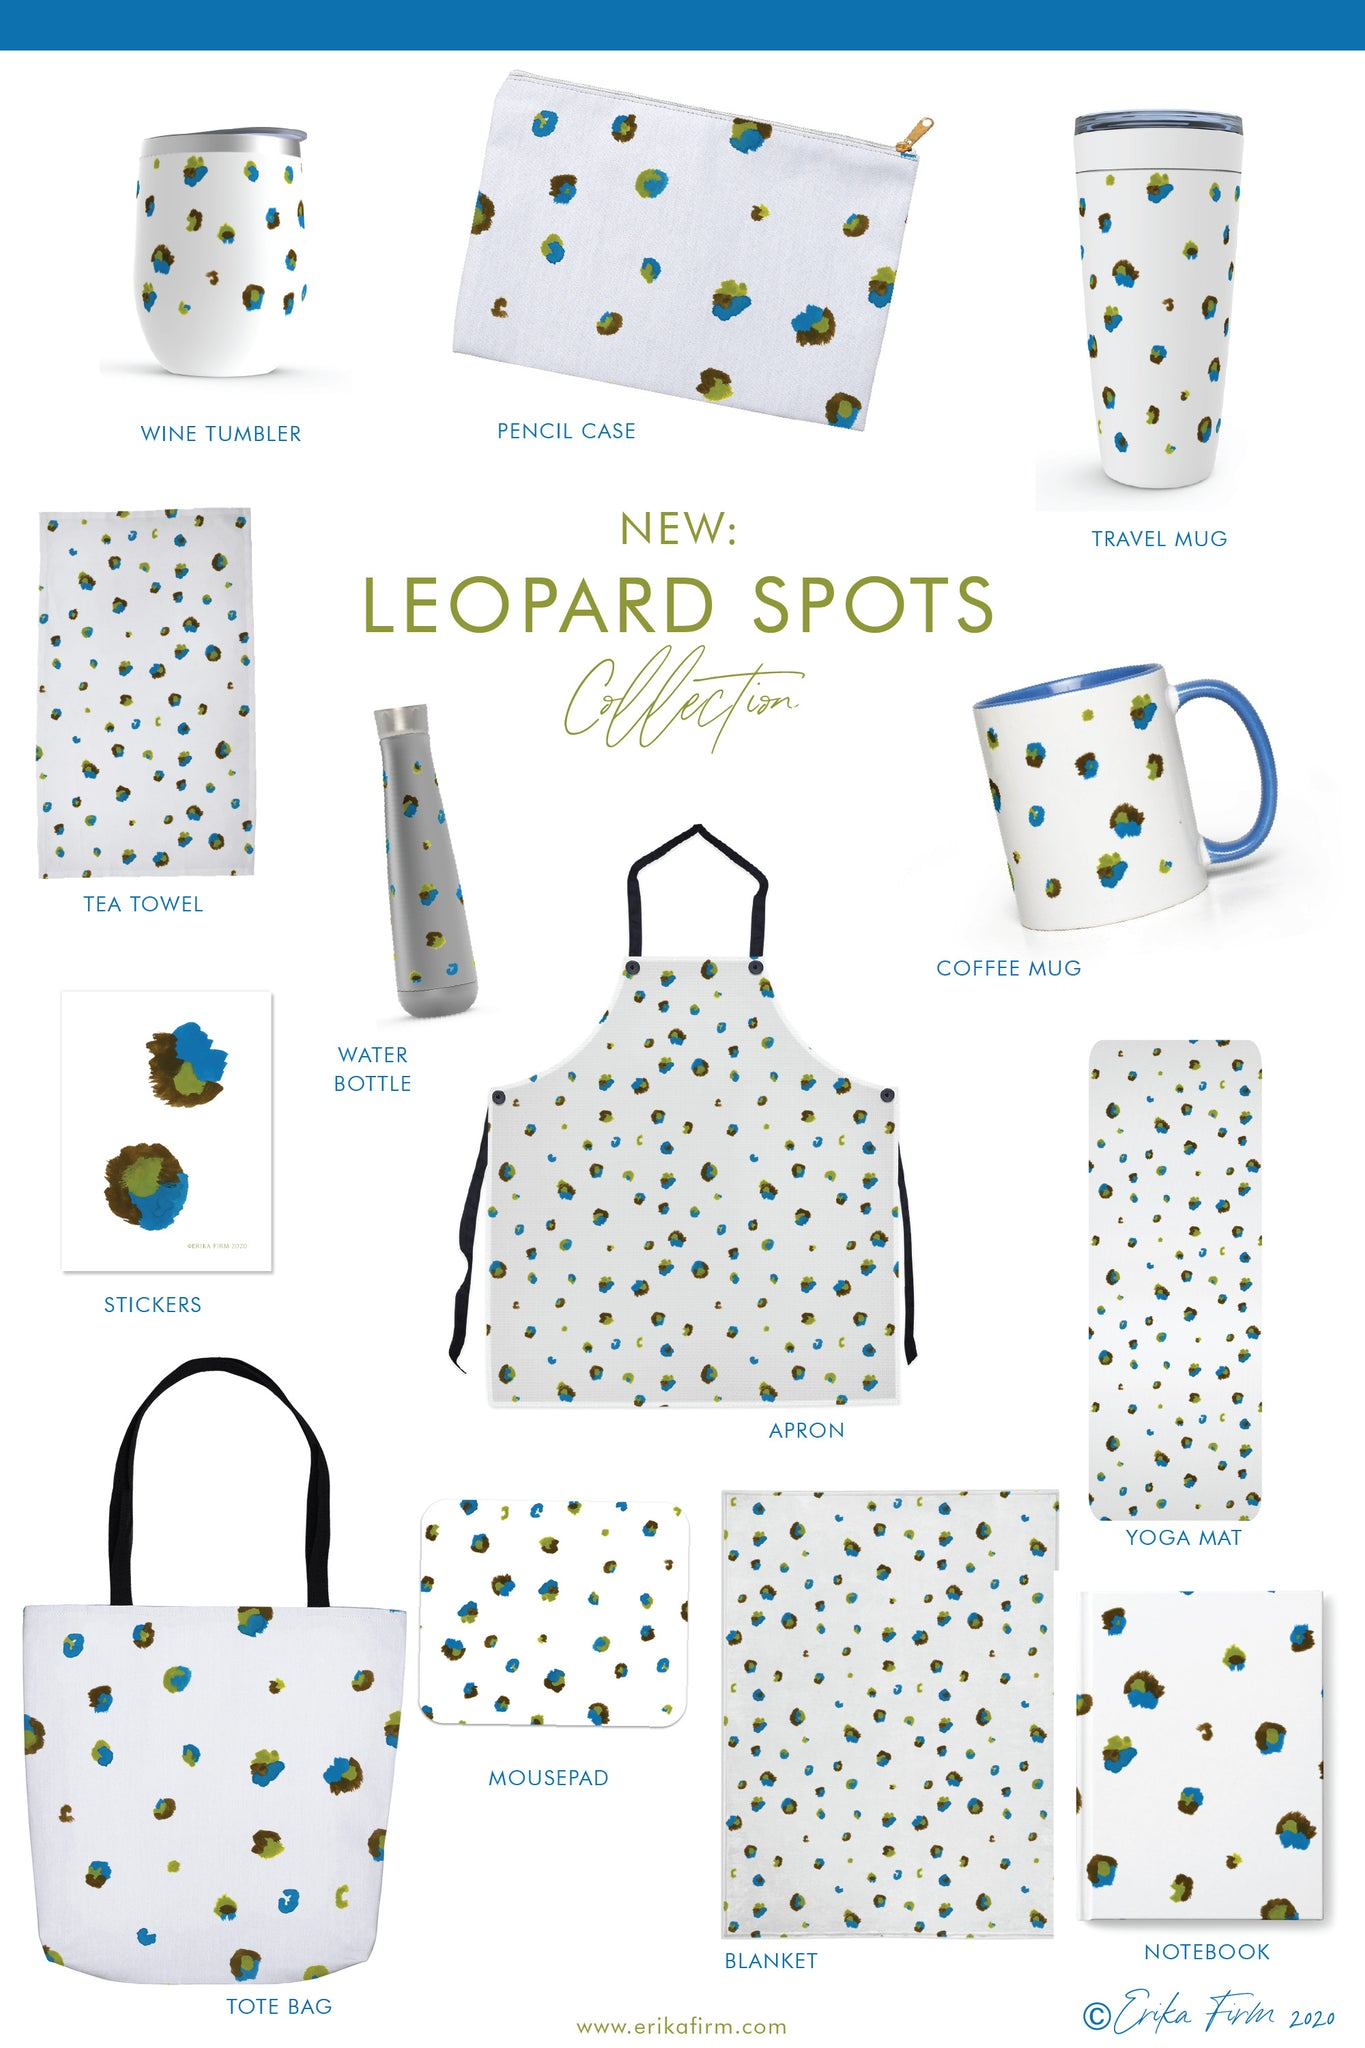 Leopard Spots Pattern Collection of drinkware, tea towels, yoga mats and gifts by Erika Firm